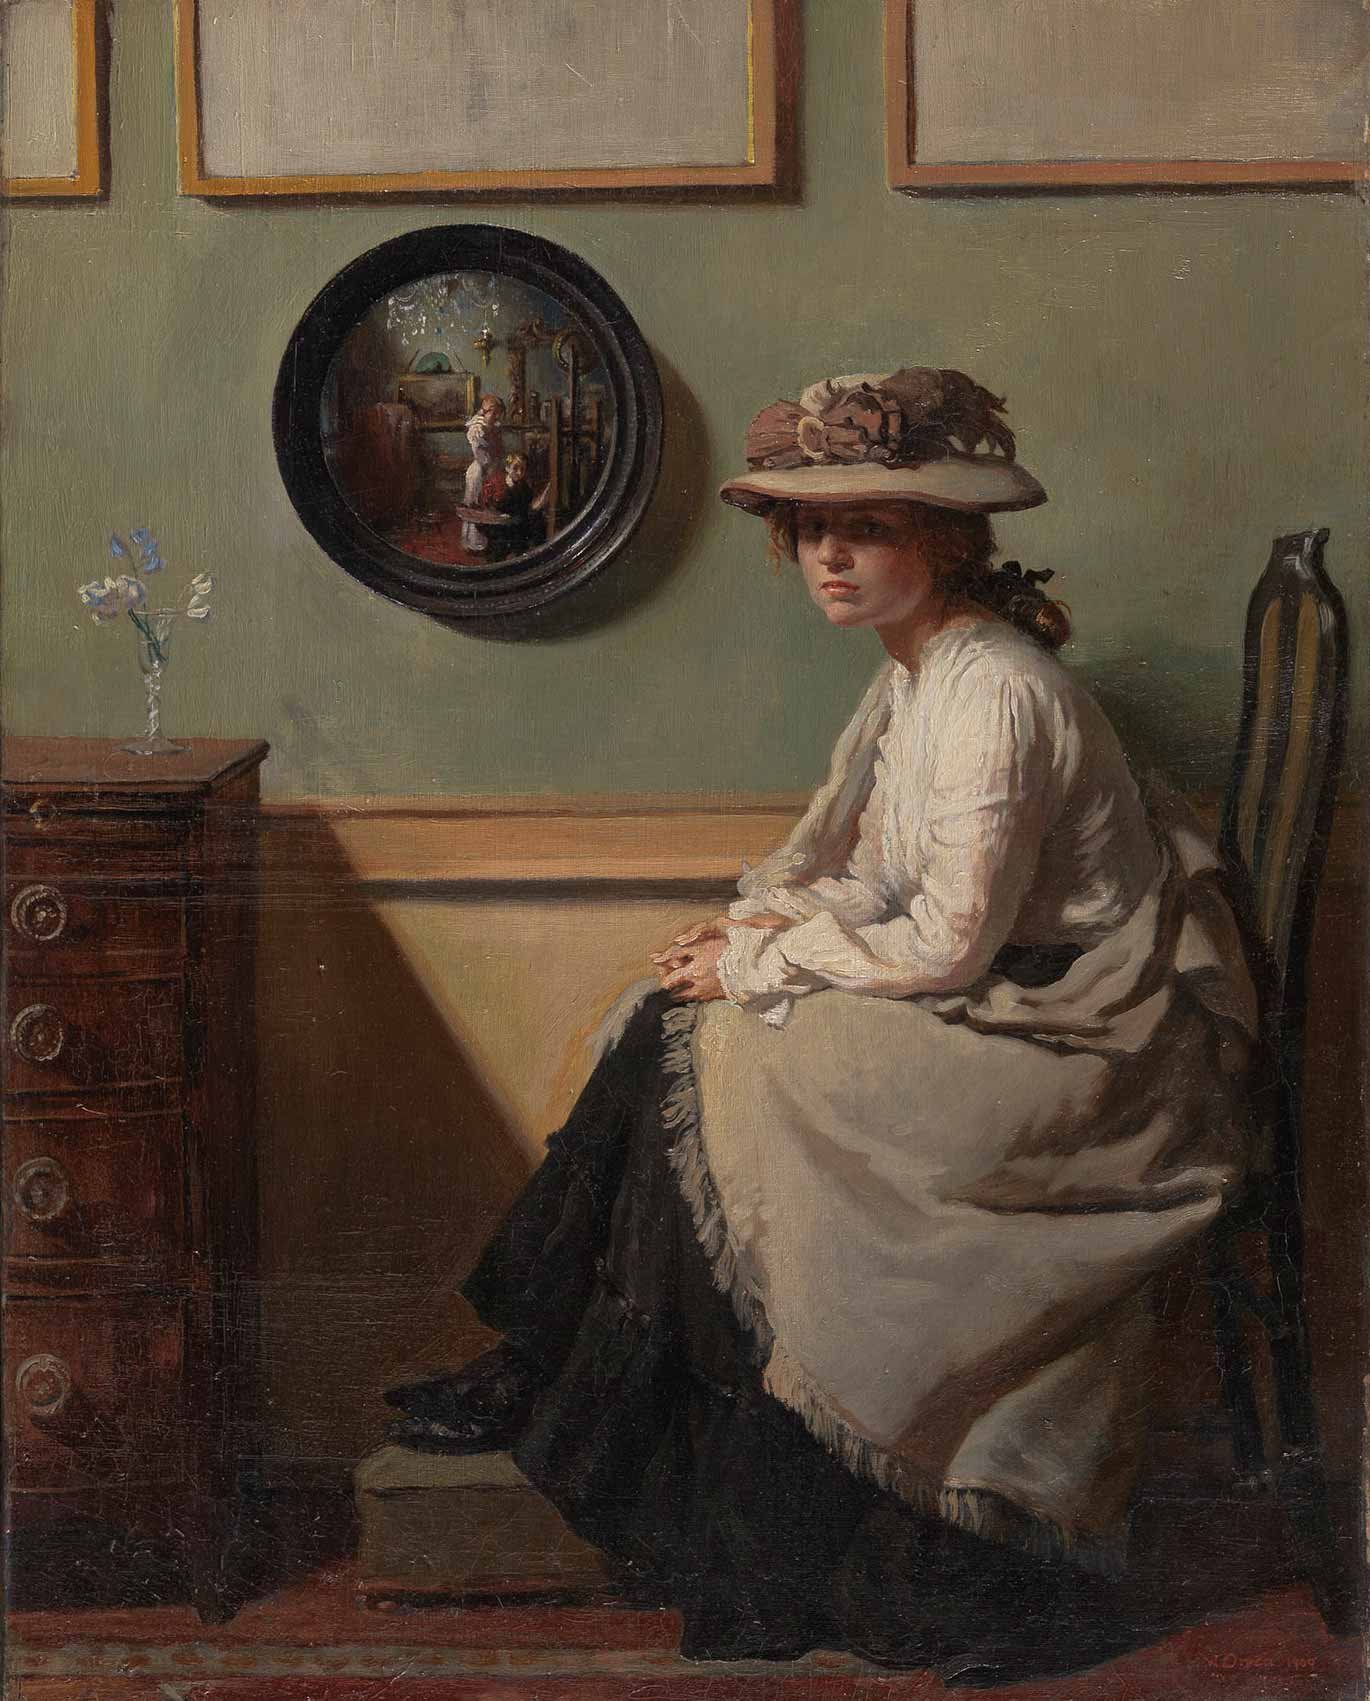 The Reflected Glory of Victorian Art by Jenny Uglow